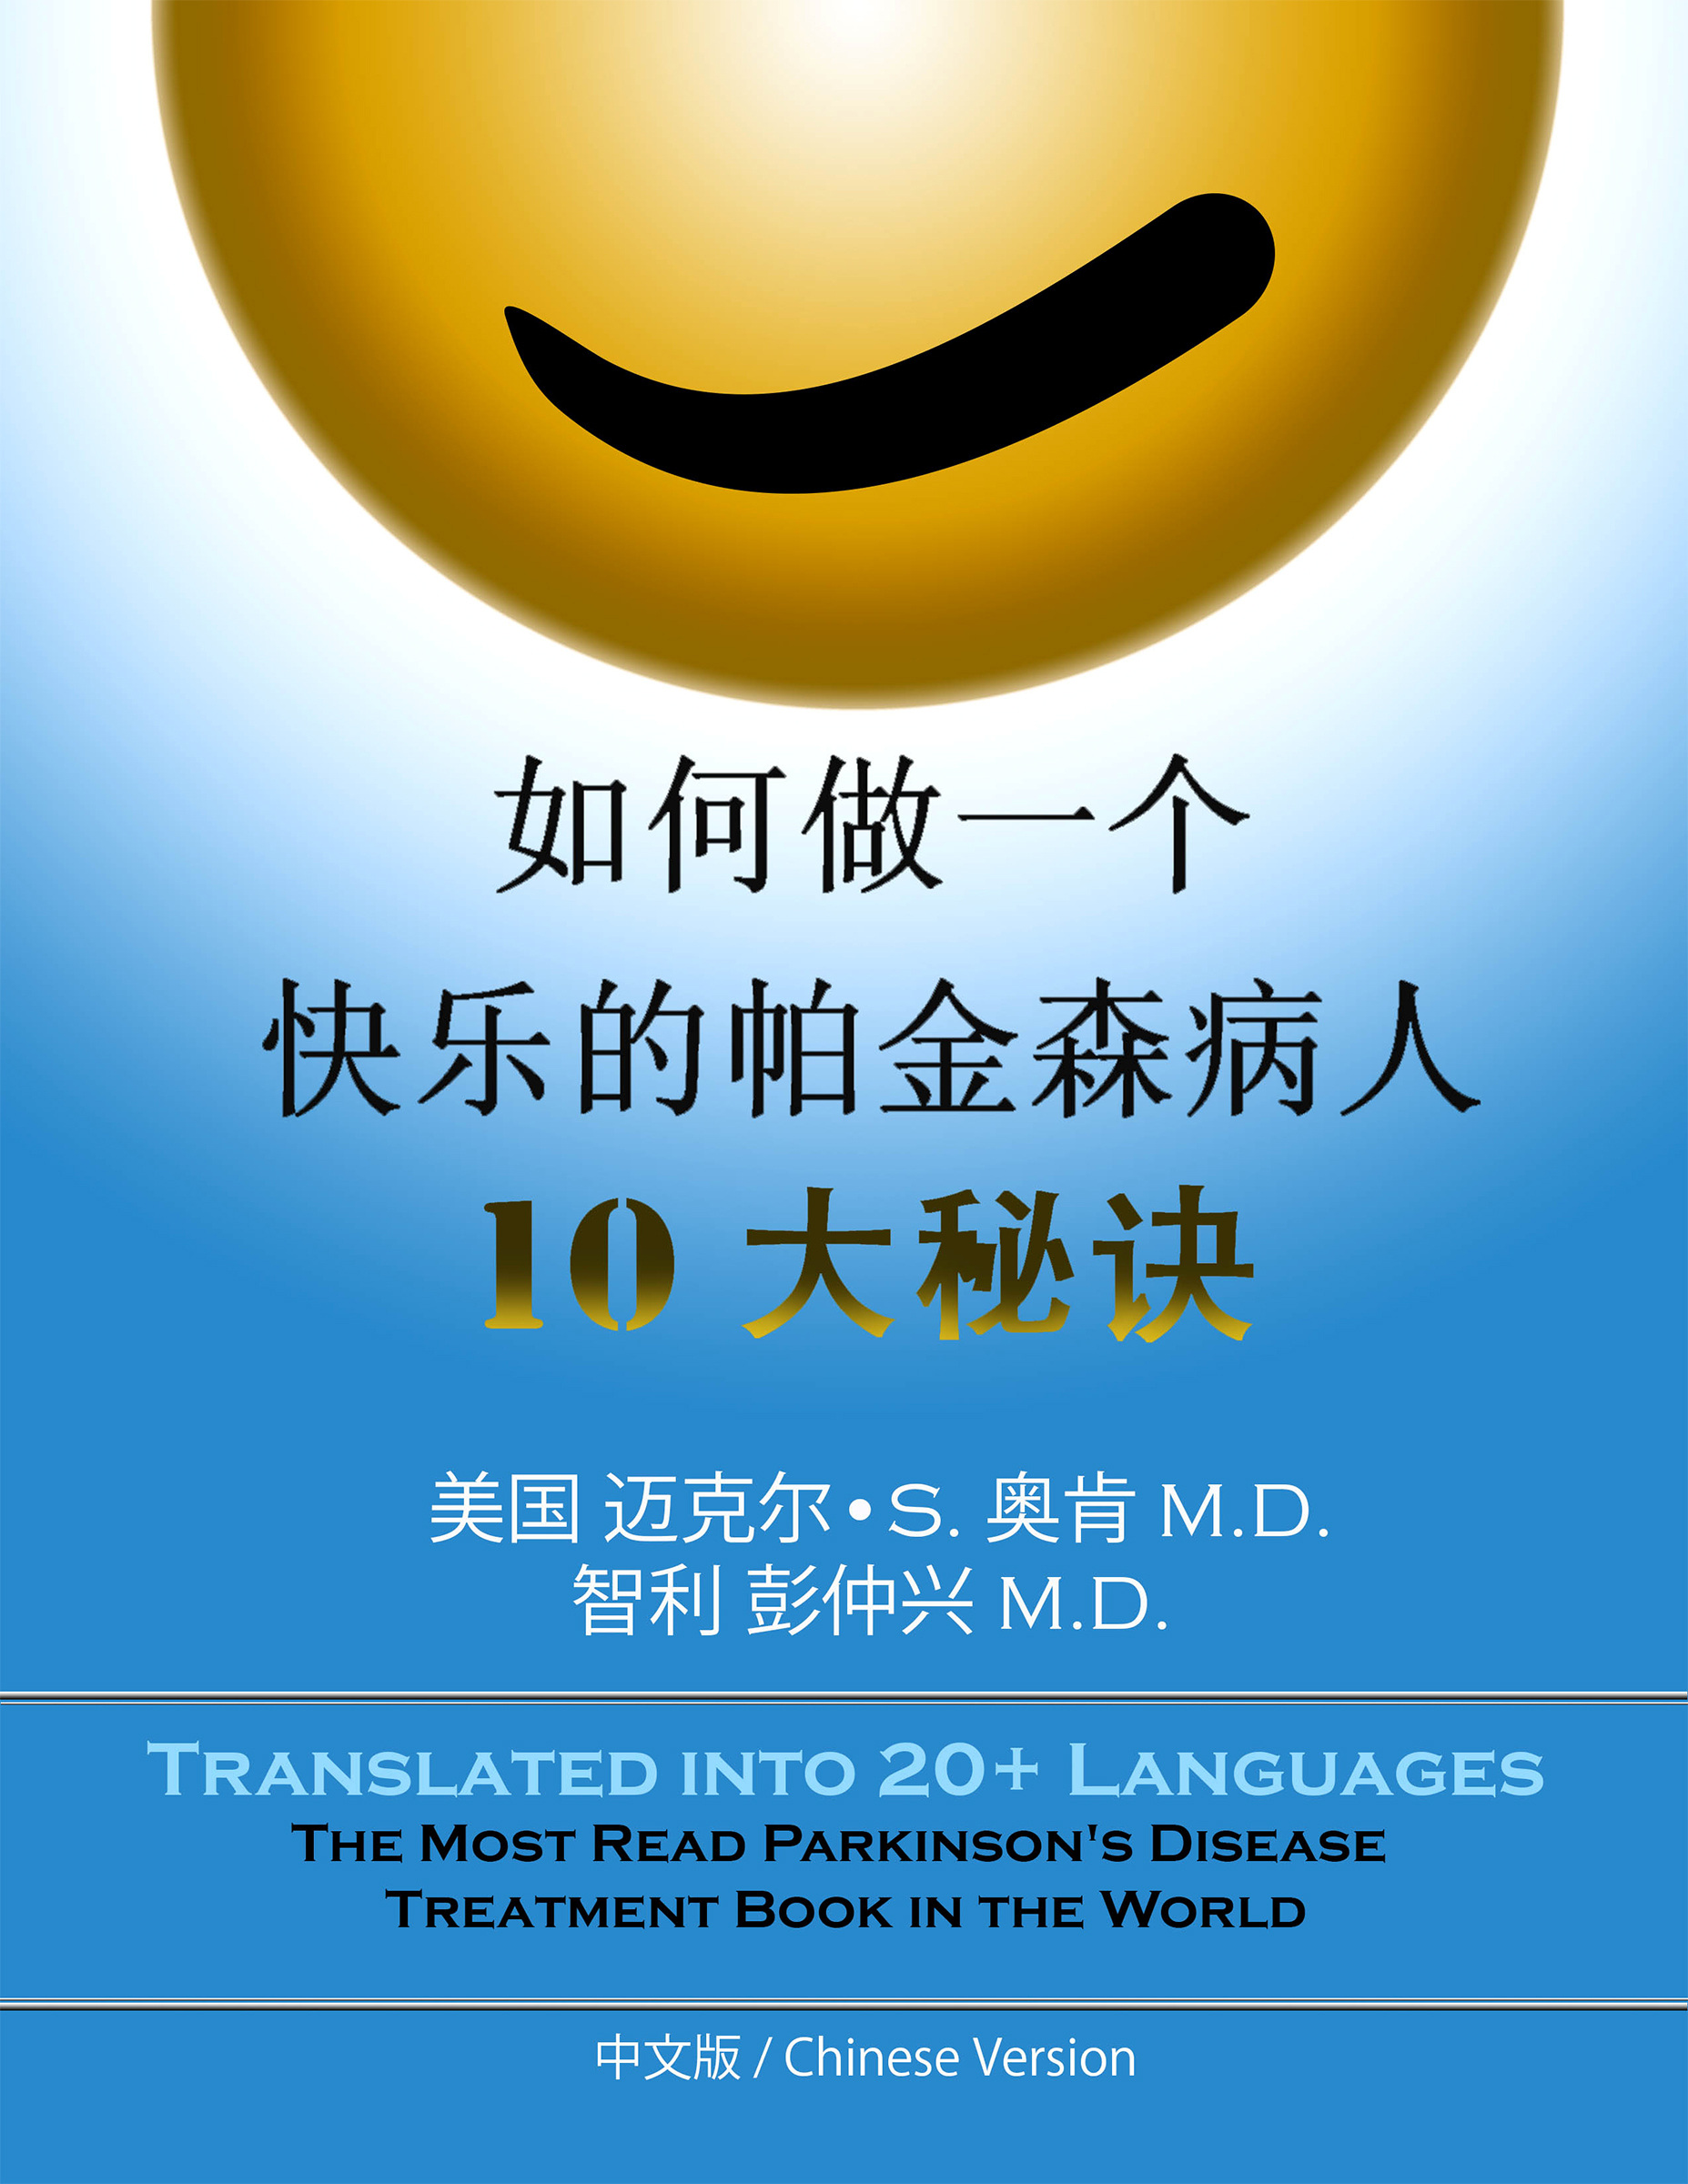 如何做一个快乐的帕金森病人,10大秘诀 Parkinson's Treatment Chinese Edition: 10 Secrets to a Happier Life